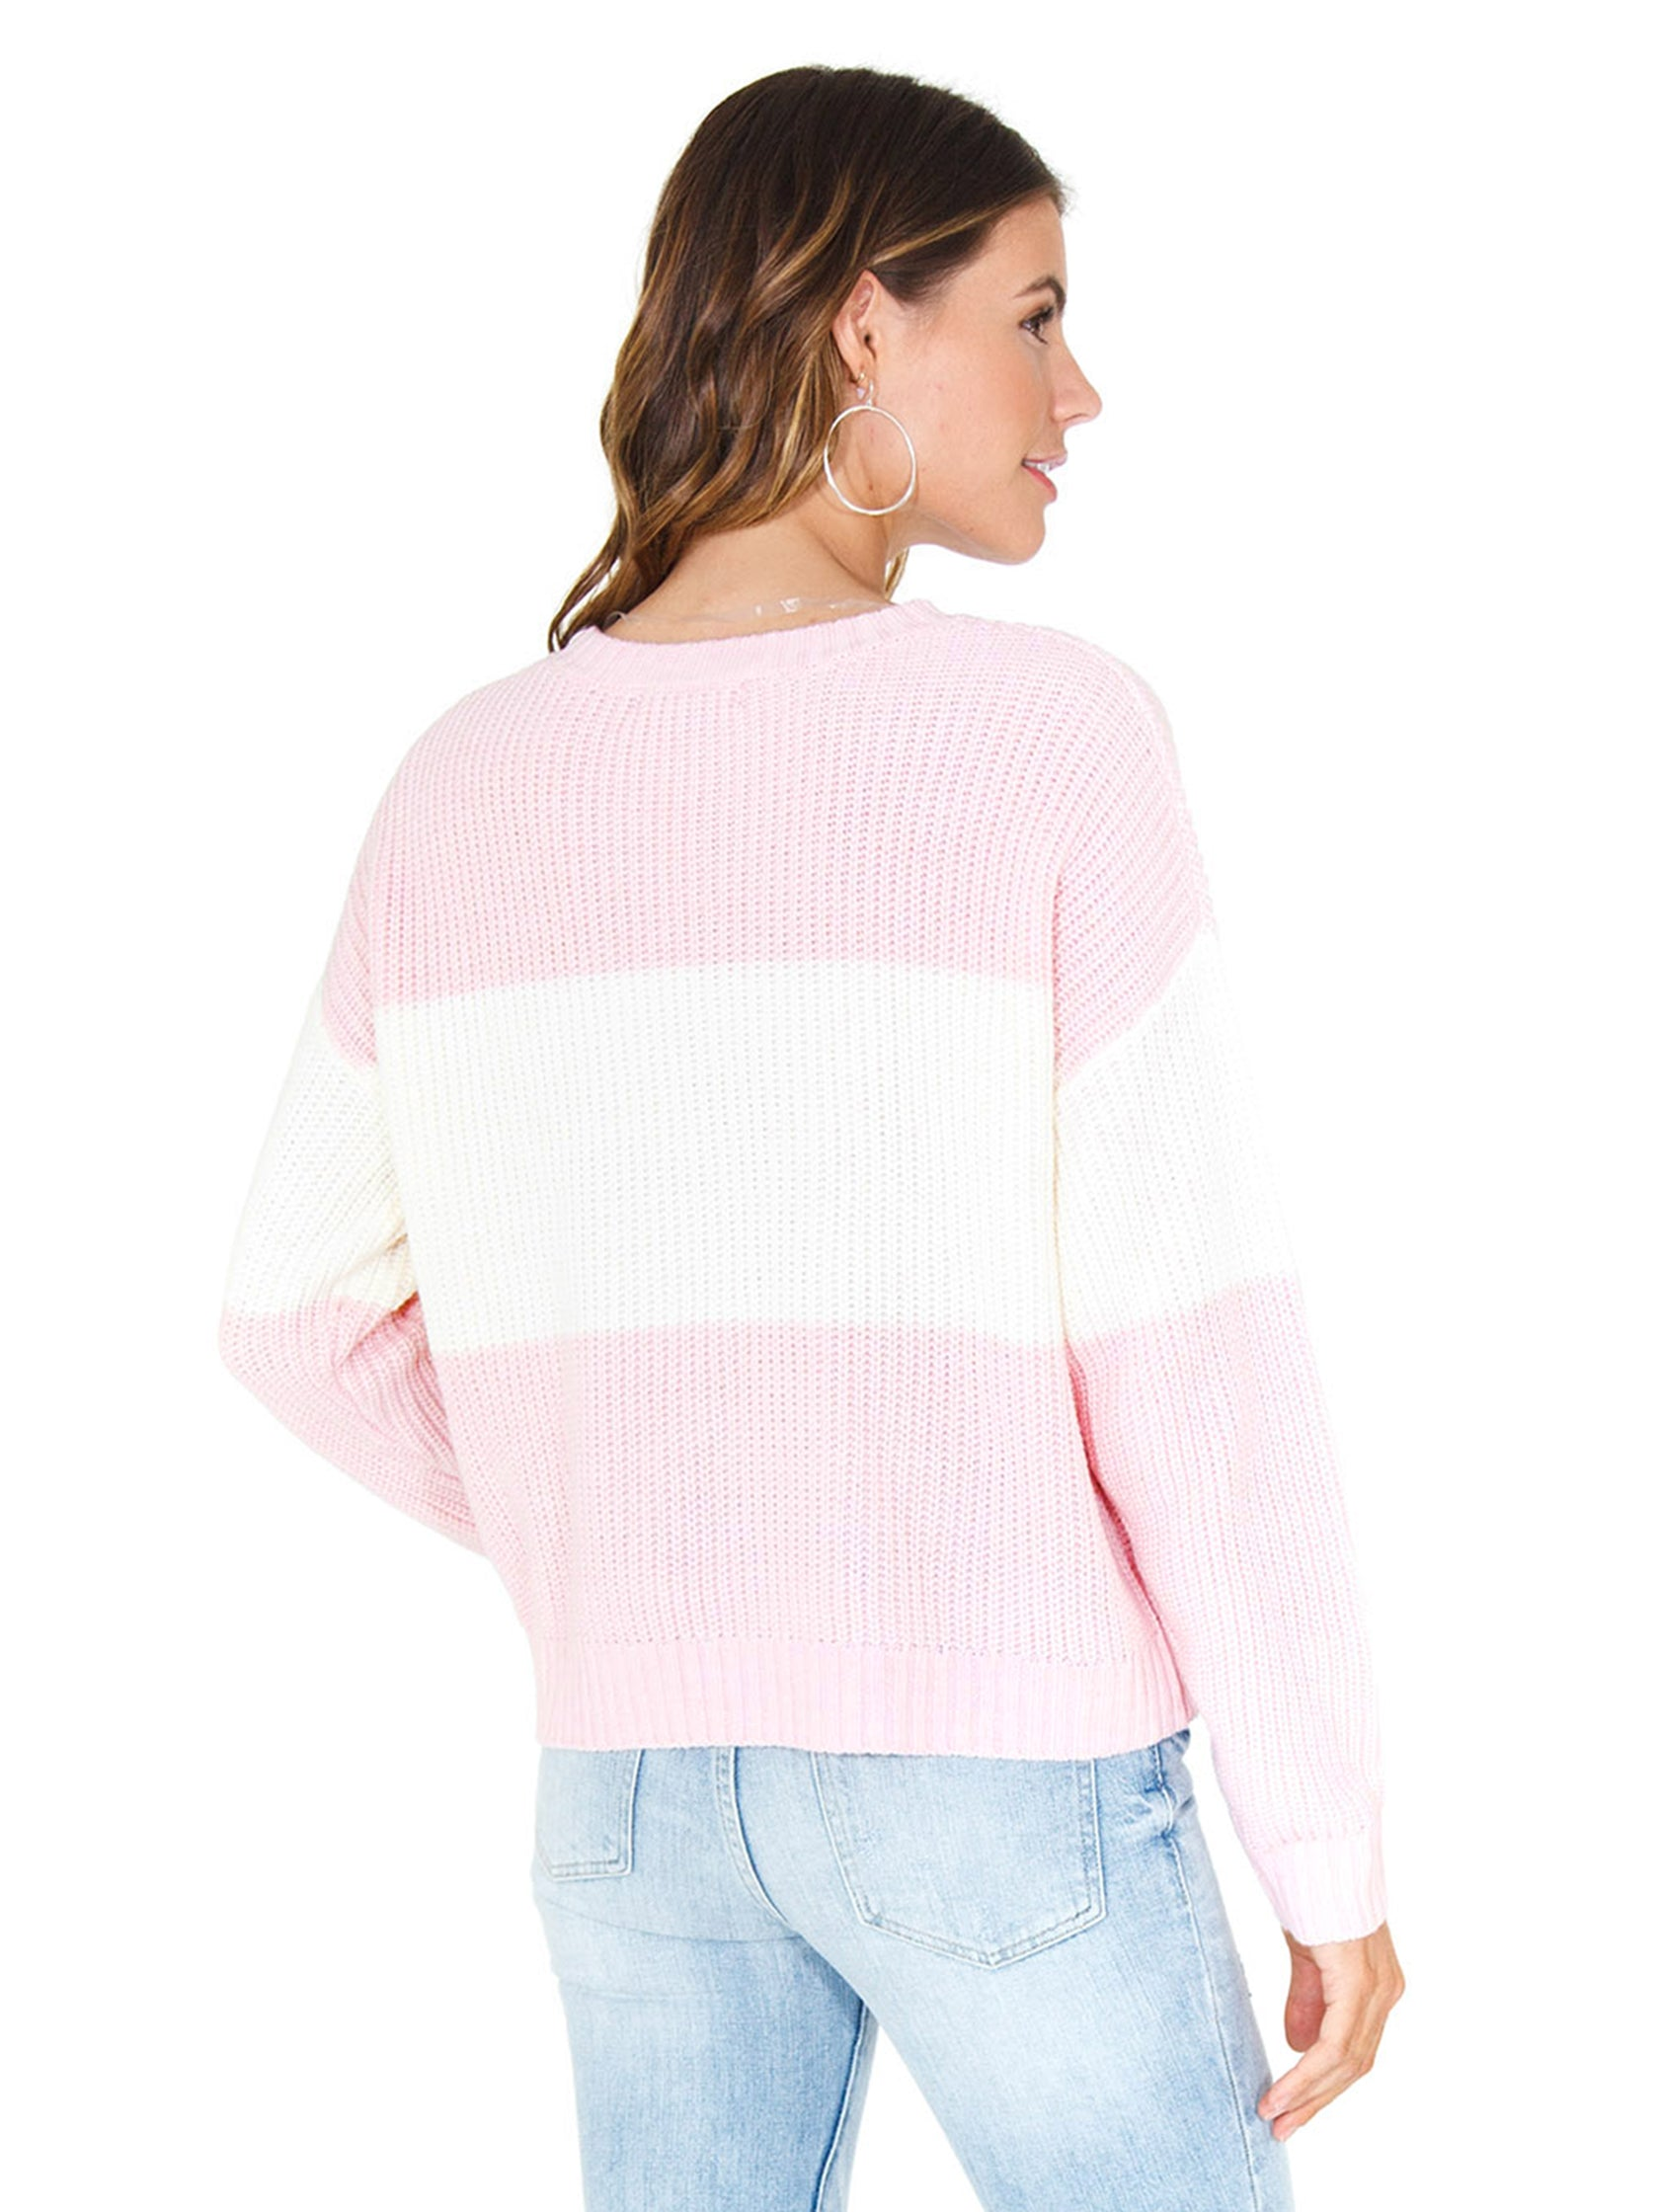 Women outfit in a sweater rental from SANCTUARY called Billie Colorblock Shaker Sweater